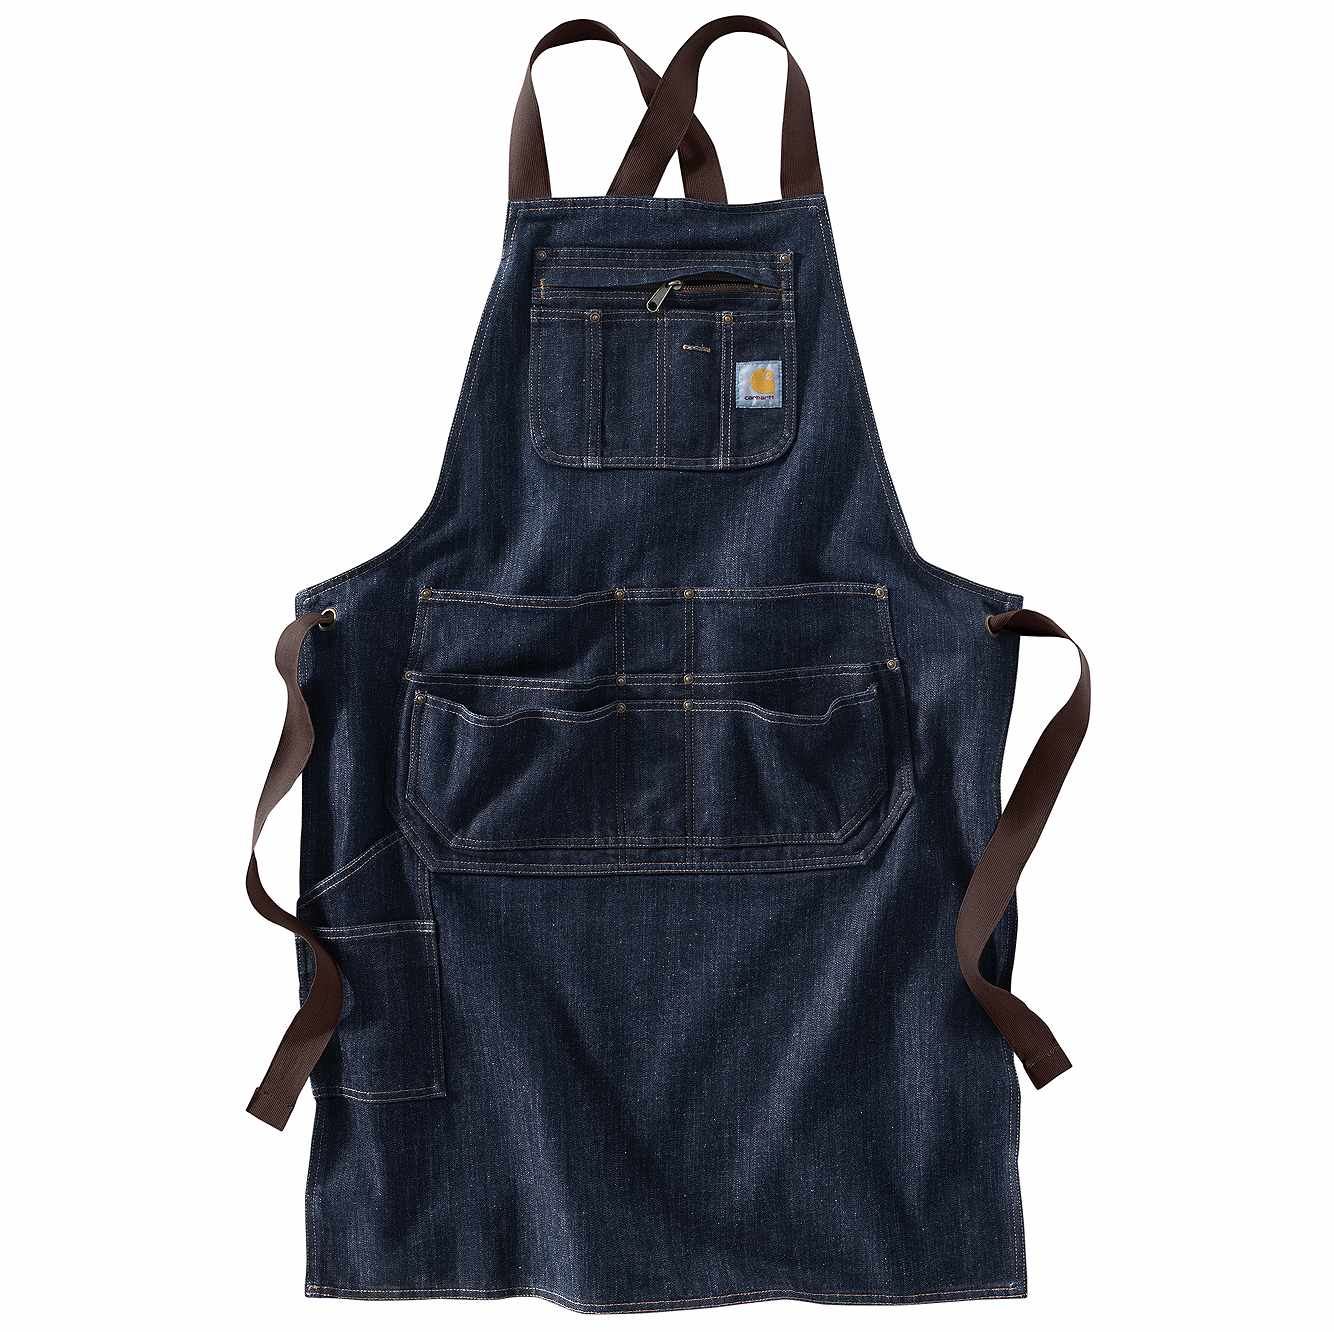 Picture of Denim Apron in Dark Blue Ridge